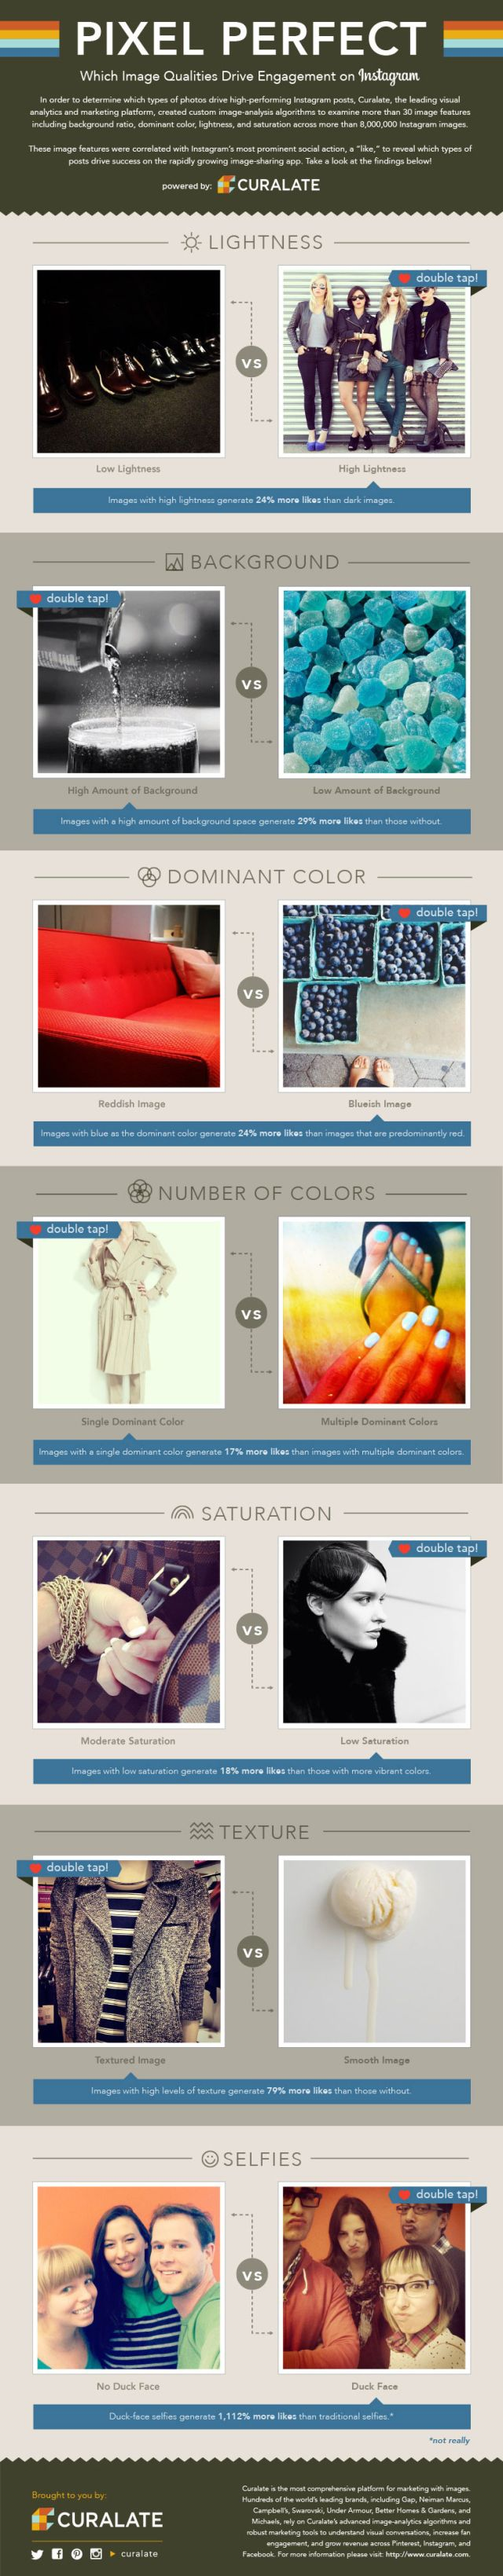 Instagram Social Media - 6 Image Techniques Which Guarantee More Likes